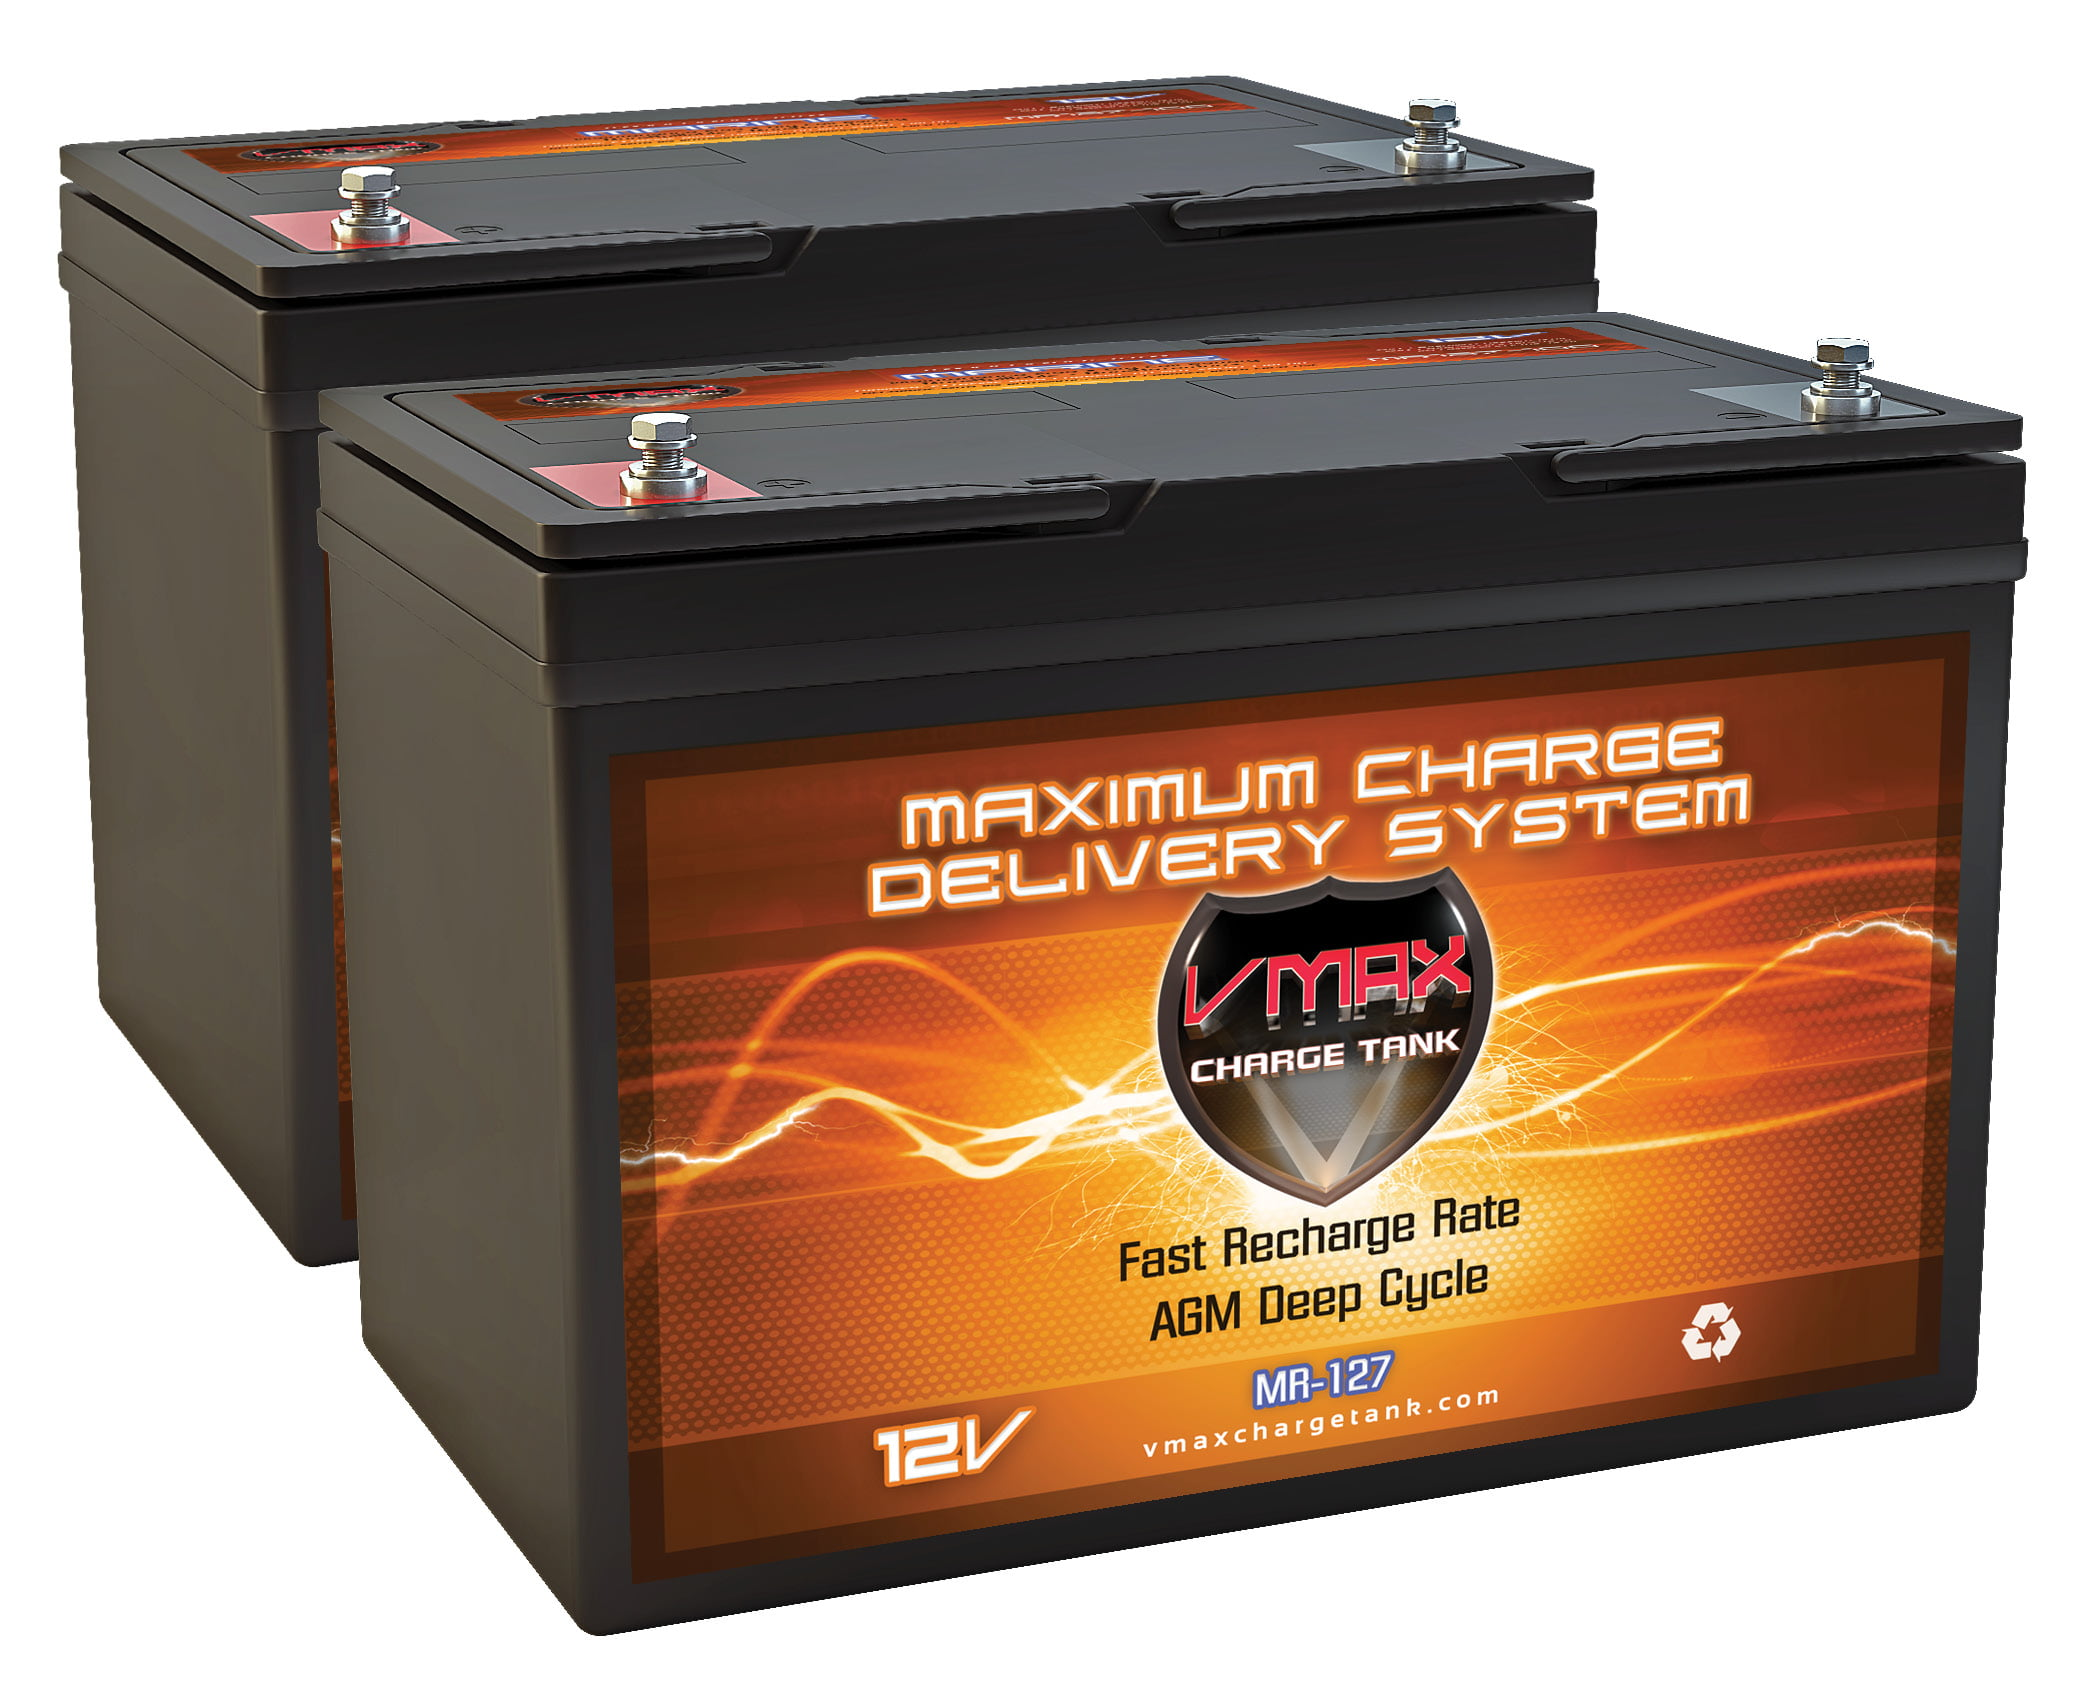 QTY2 VMAX MR127-100 12V 100AH AGM Deep Cycle Group 27 Batteries for Minn Kota Riptide SF 80 Saltwater Bow-Mount 24V 80lb... by VMAX USA